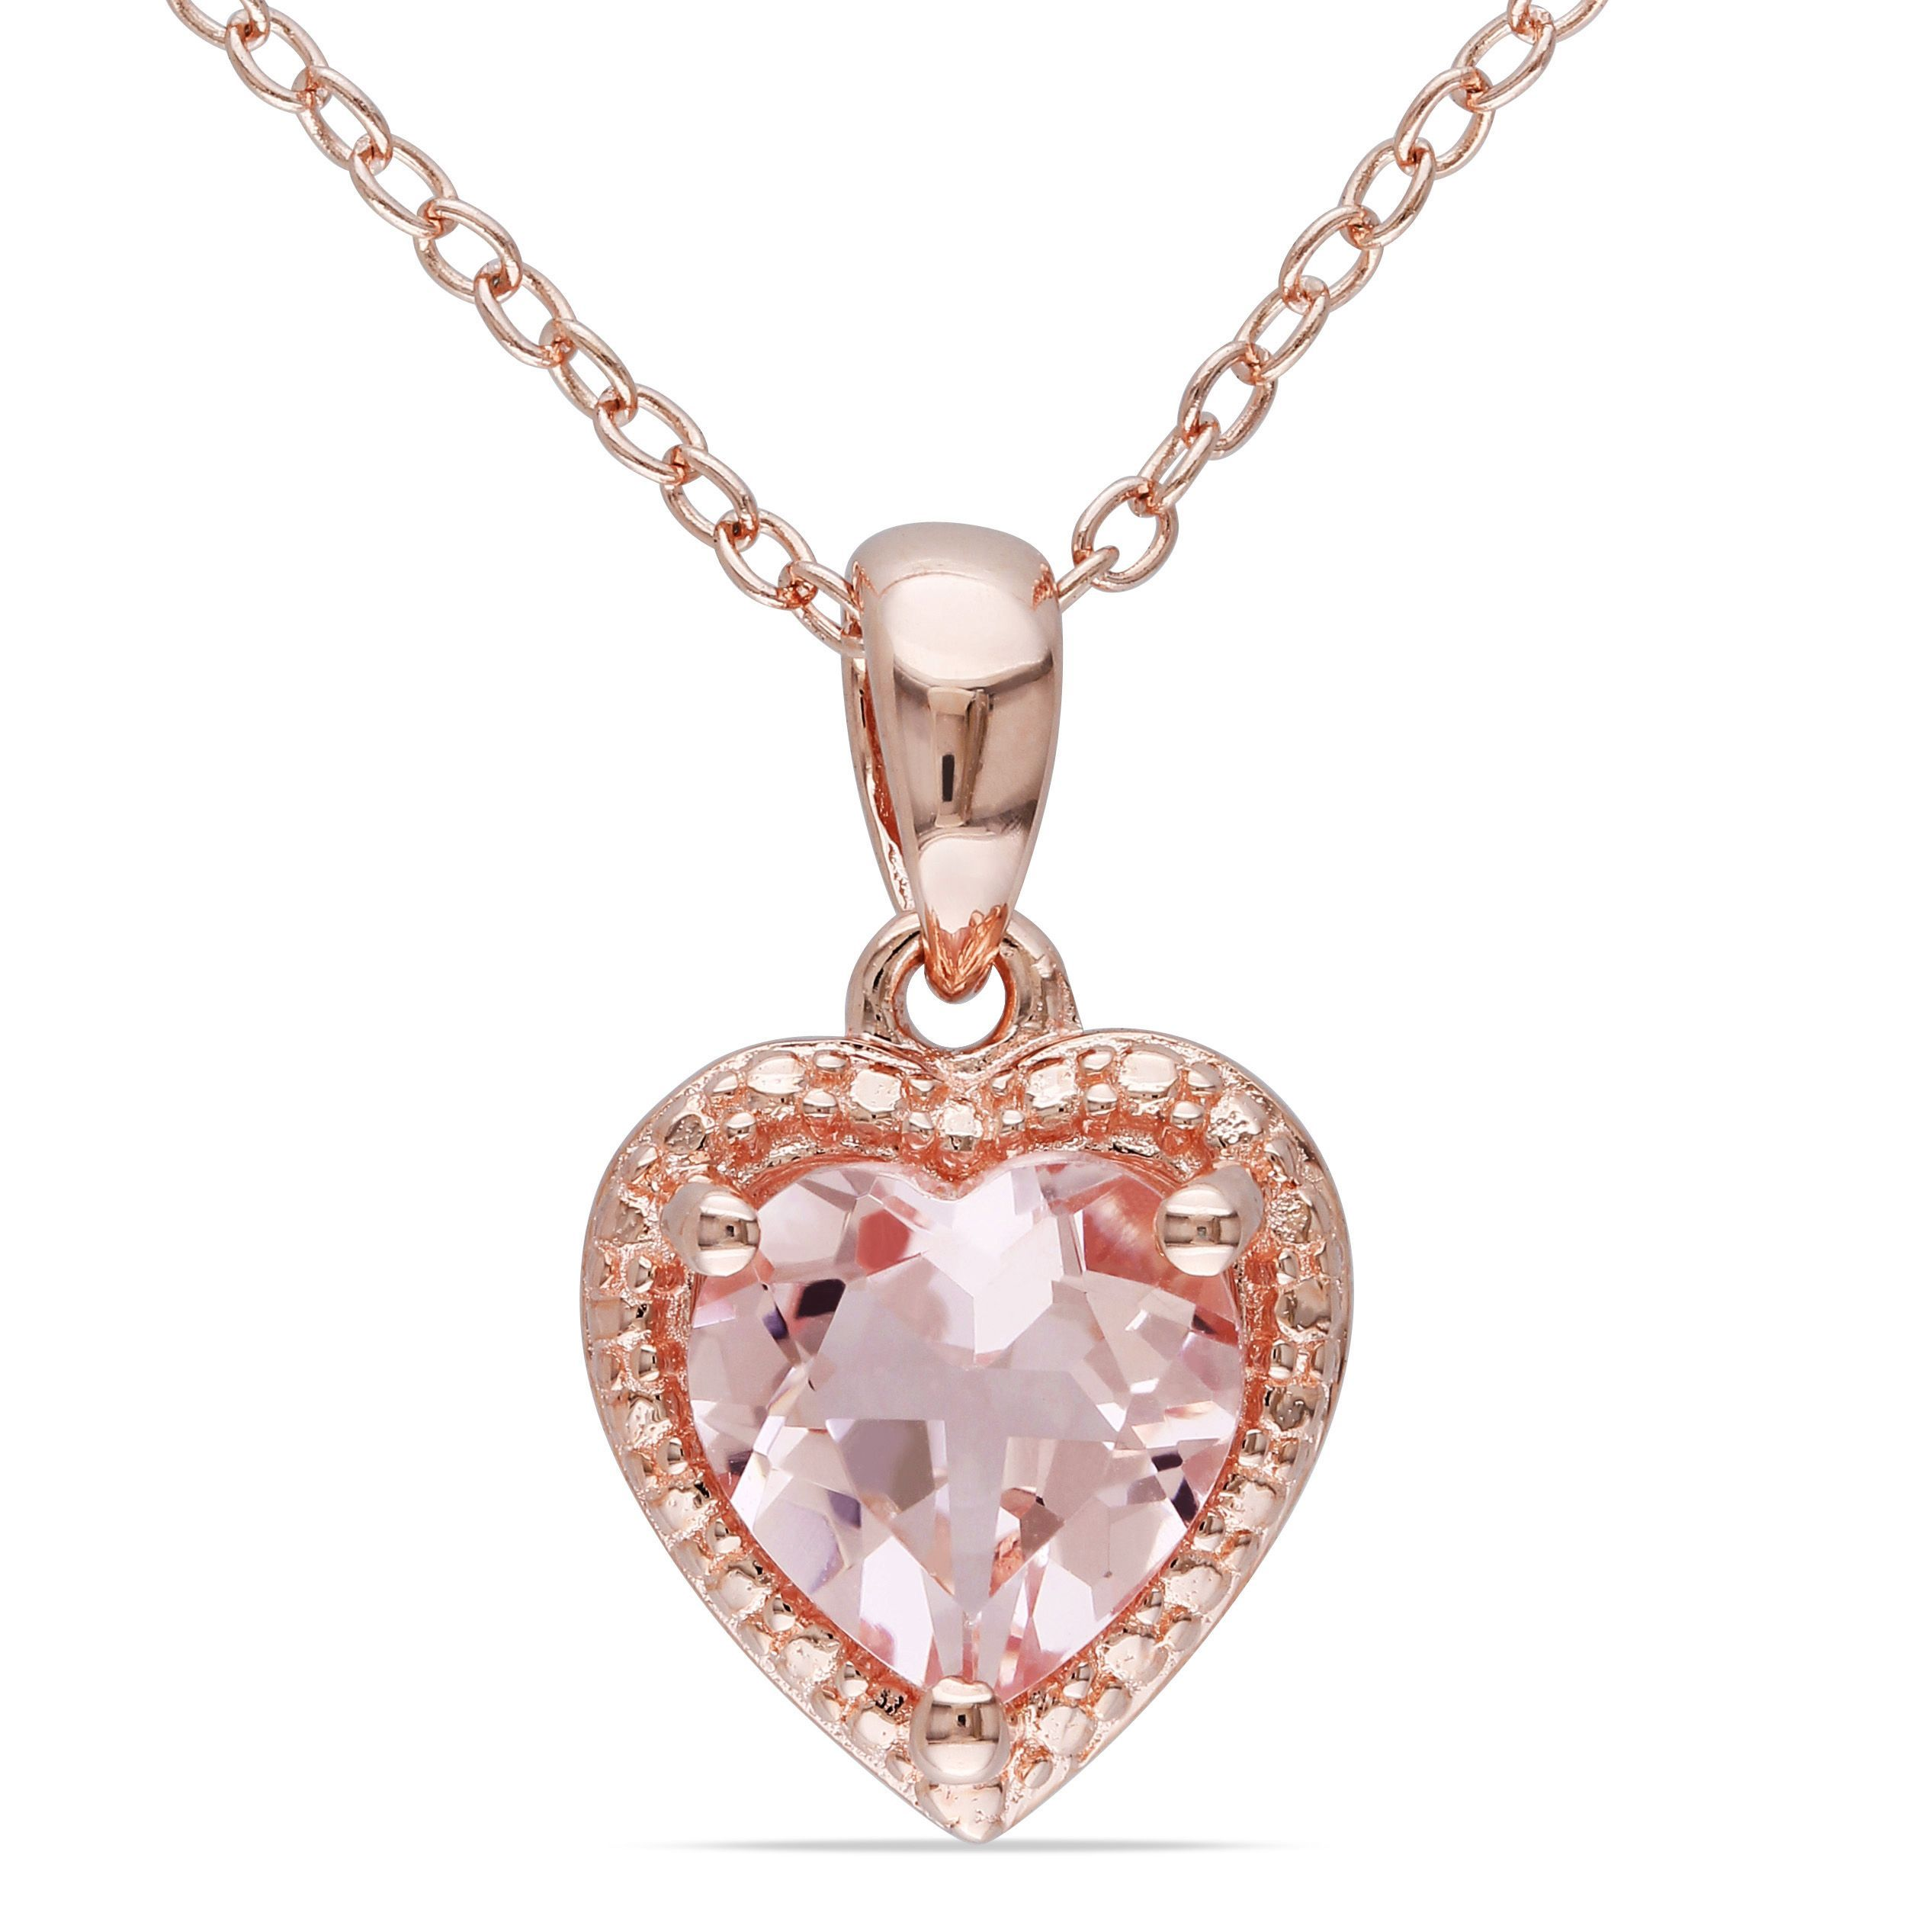 pendant diamond jewelry dsc gemstone at collections necklaces pendants gold and morganite